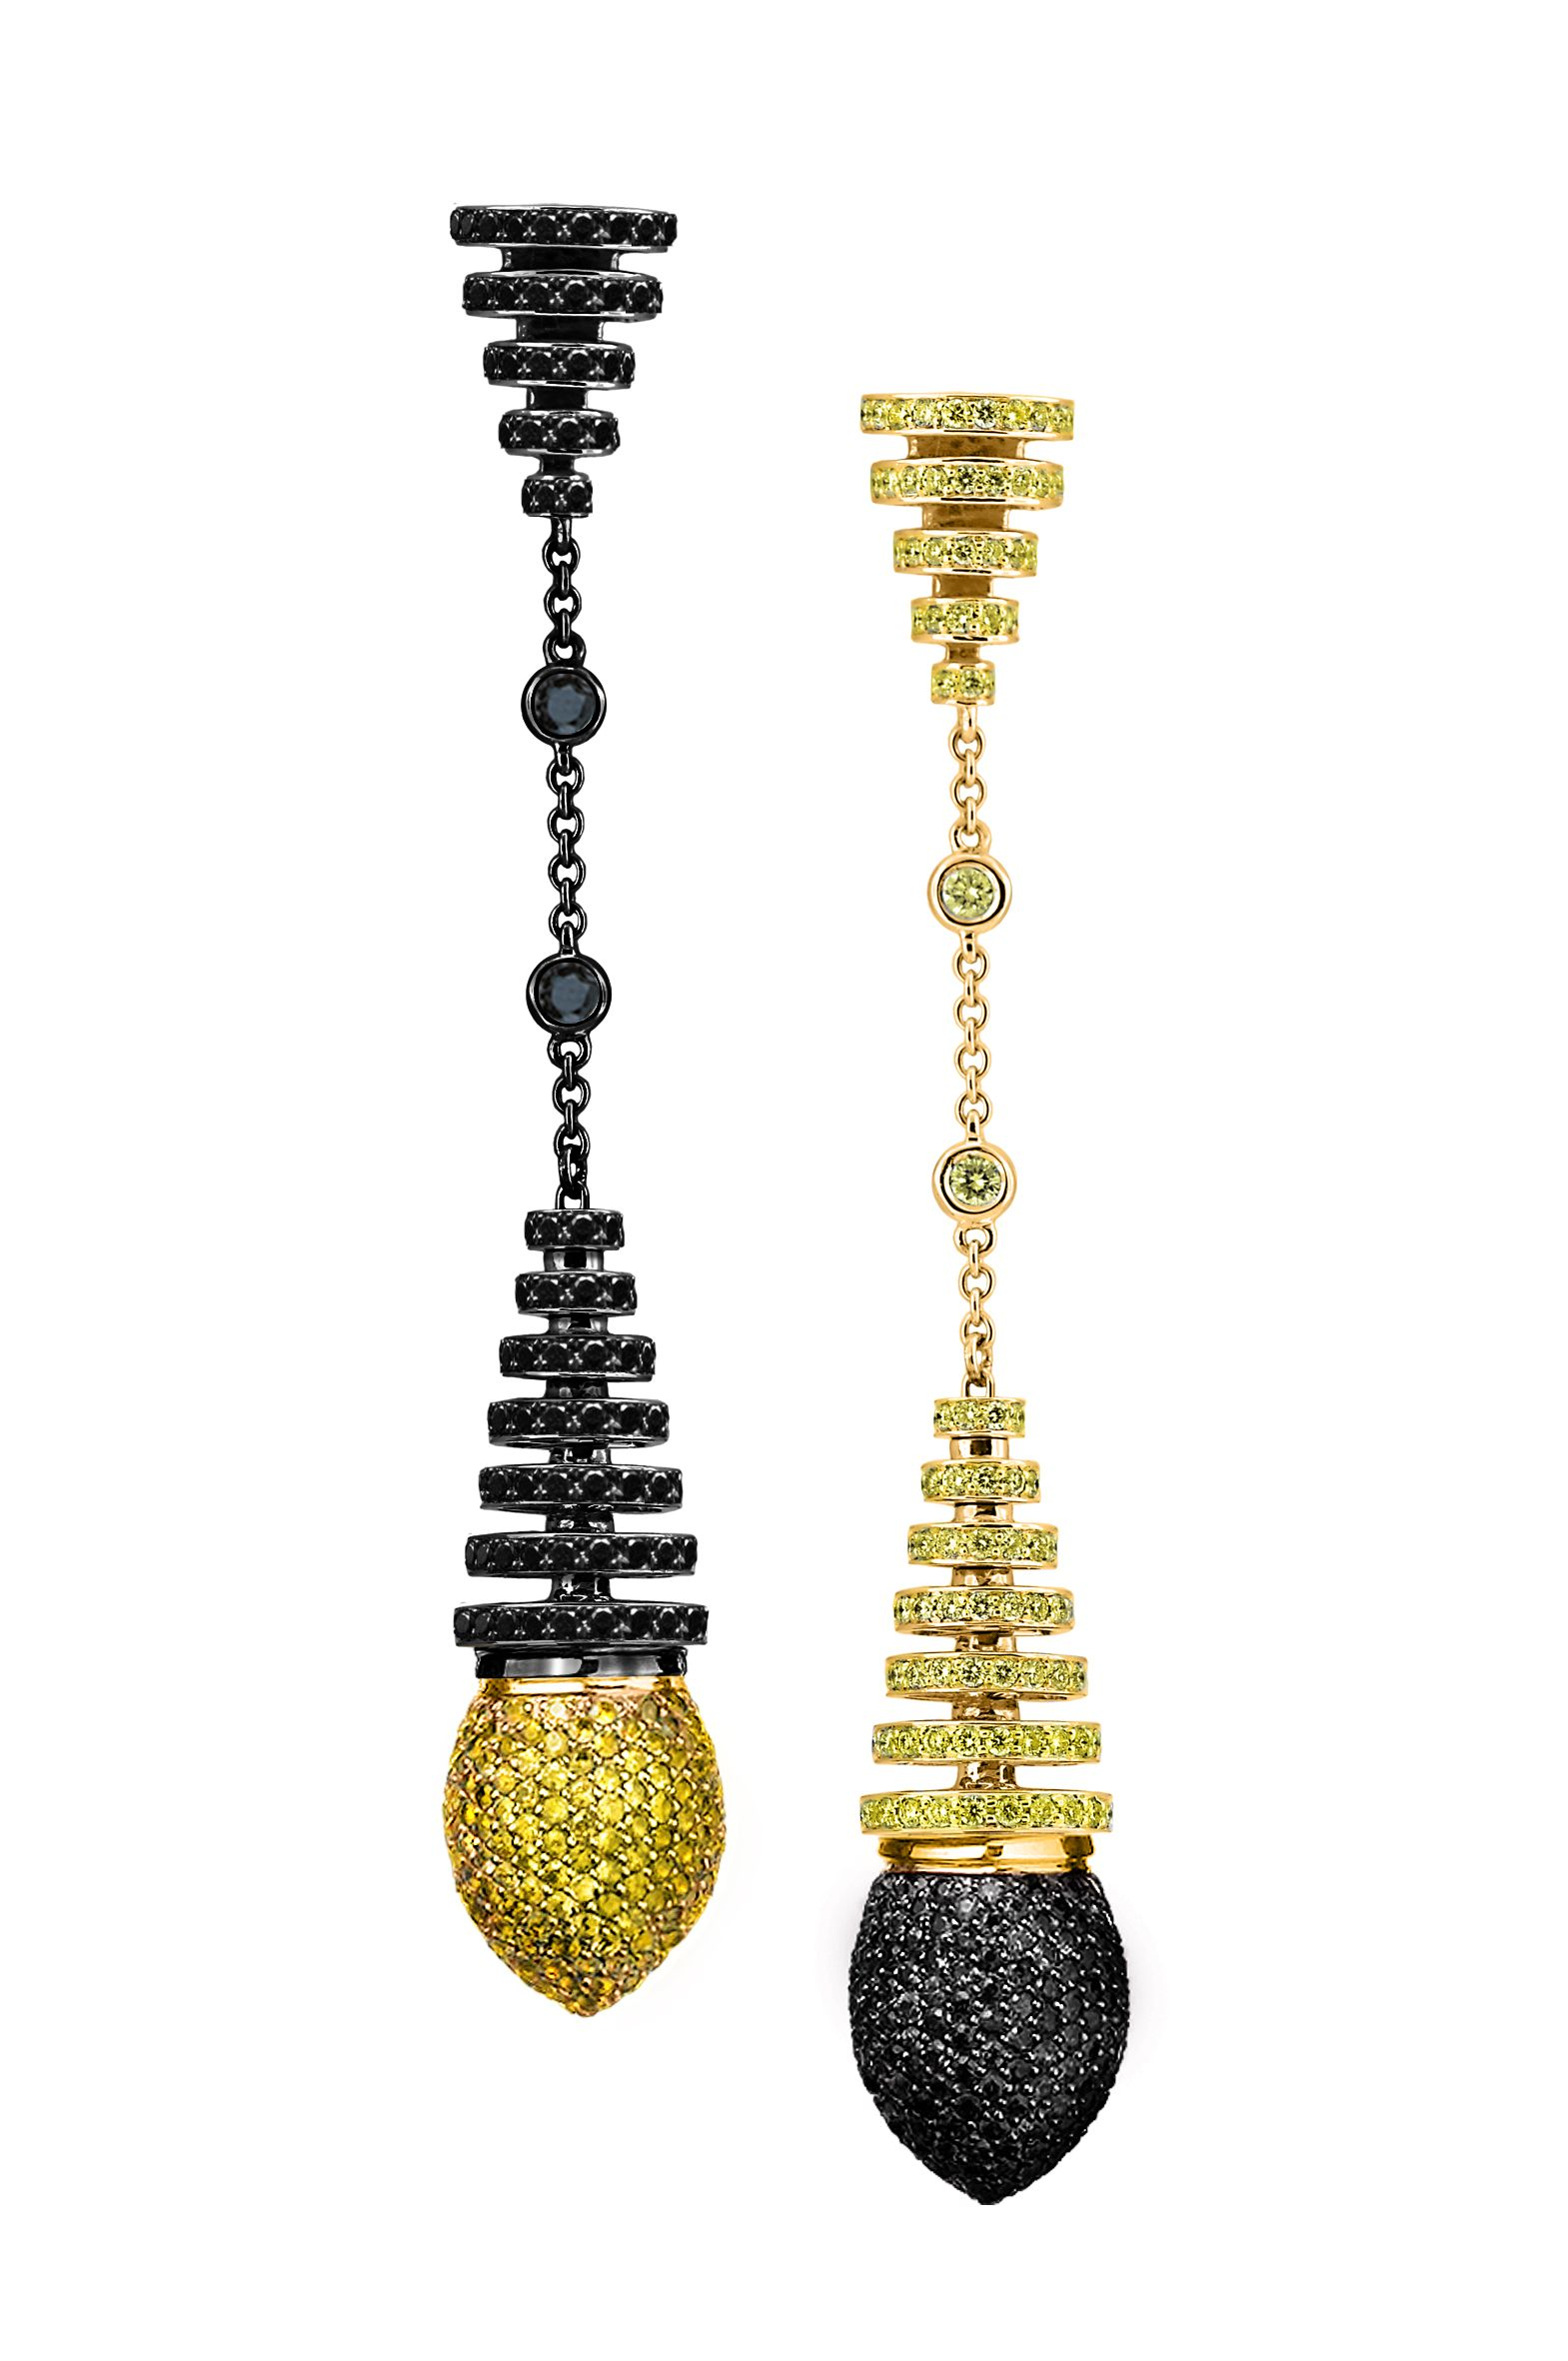 AVAKIAN Riviera Collection earrings in yellow and black diamonds